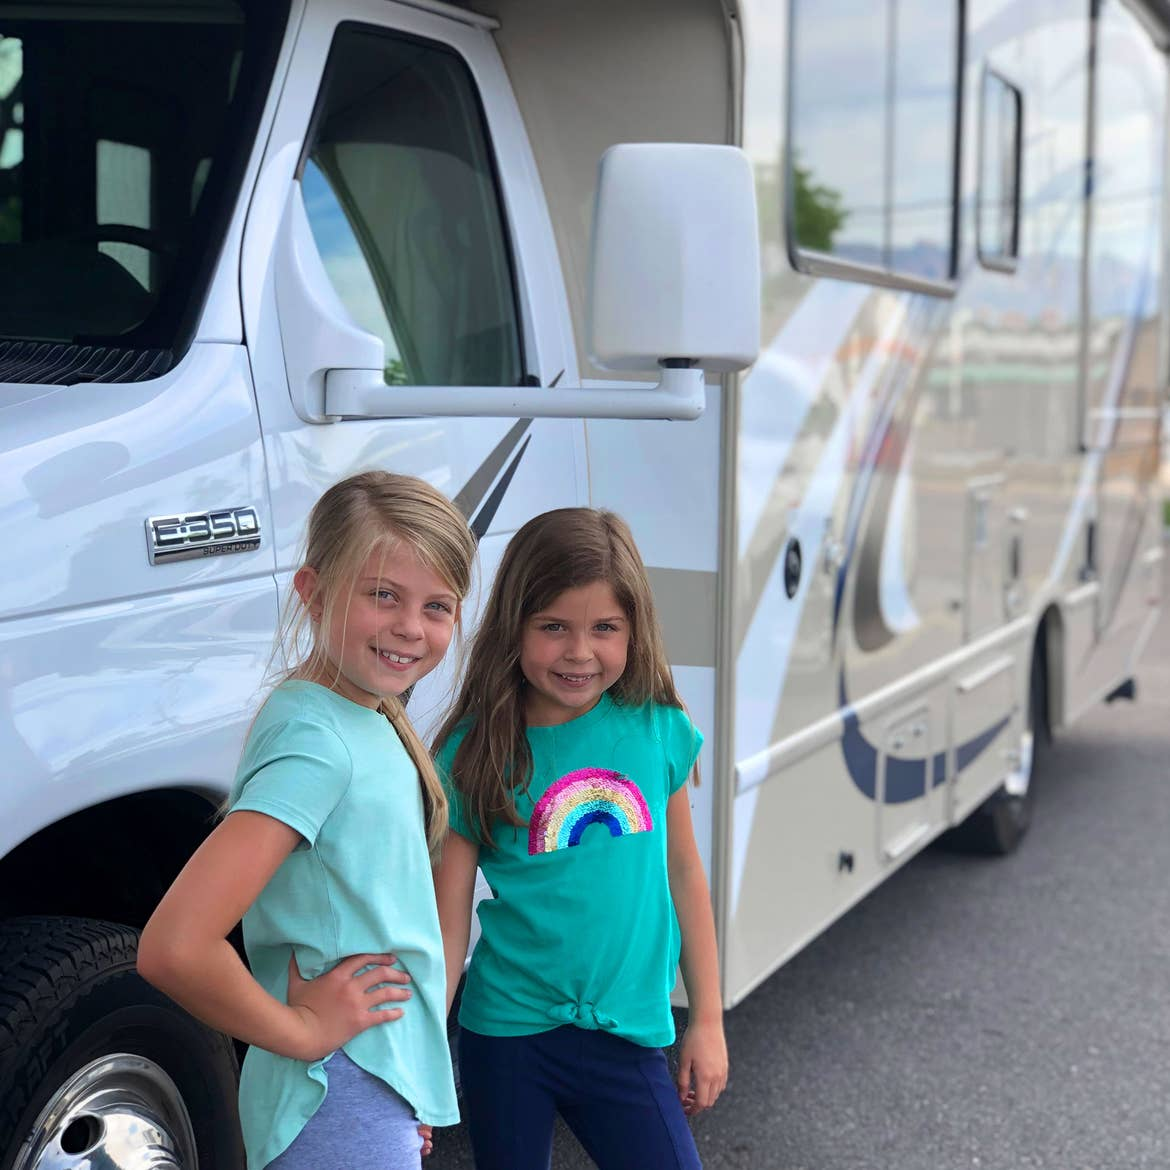 Author, Chris Johnstons' daughters, Kyndall (left), and Kyler (right) pose with in front of a white RV.